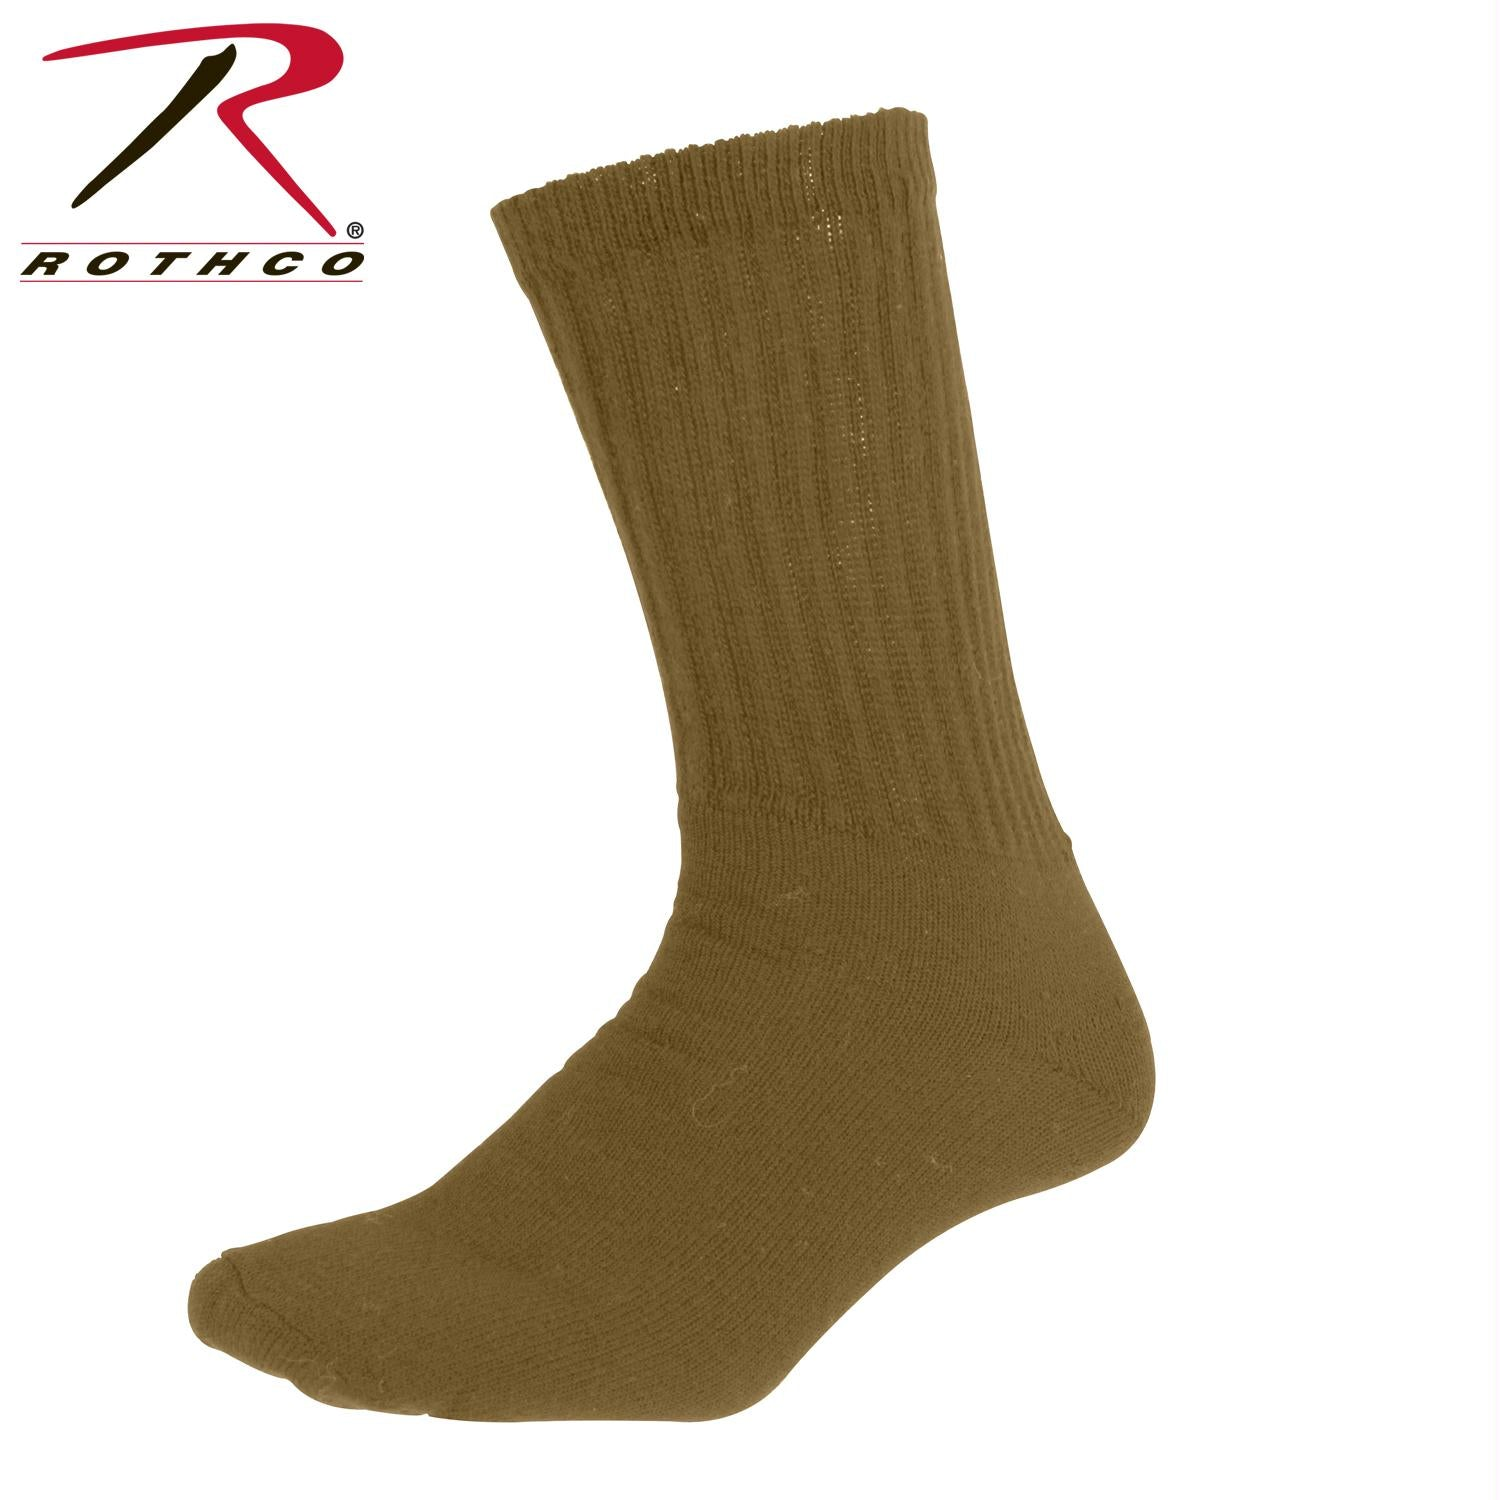 Rothco Athletic Crew Socks - Coyote Brown / L